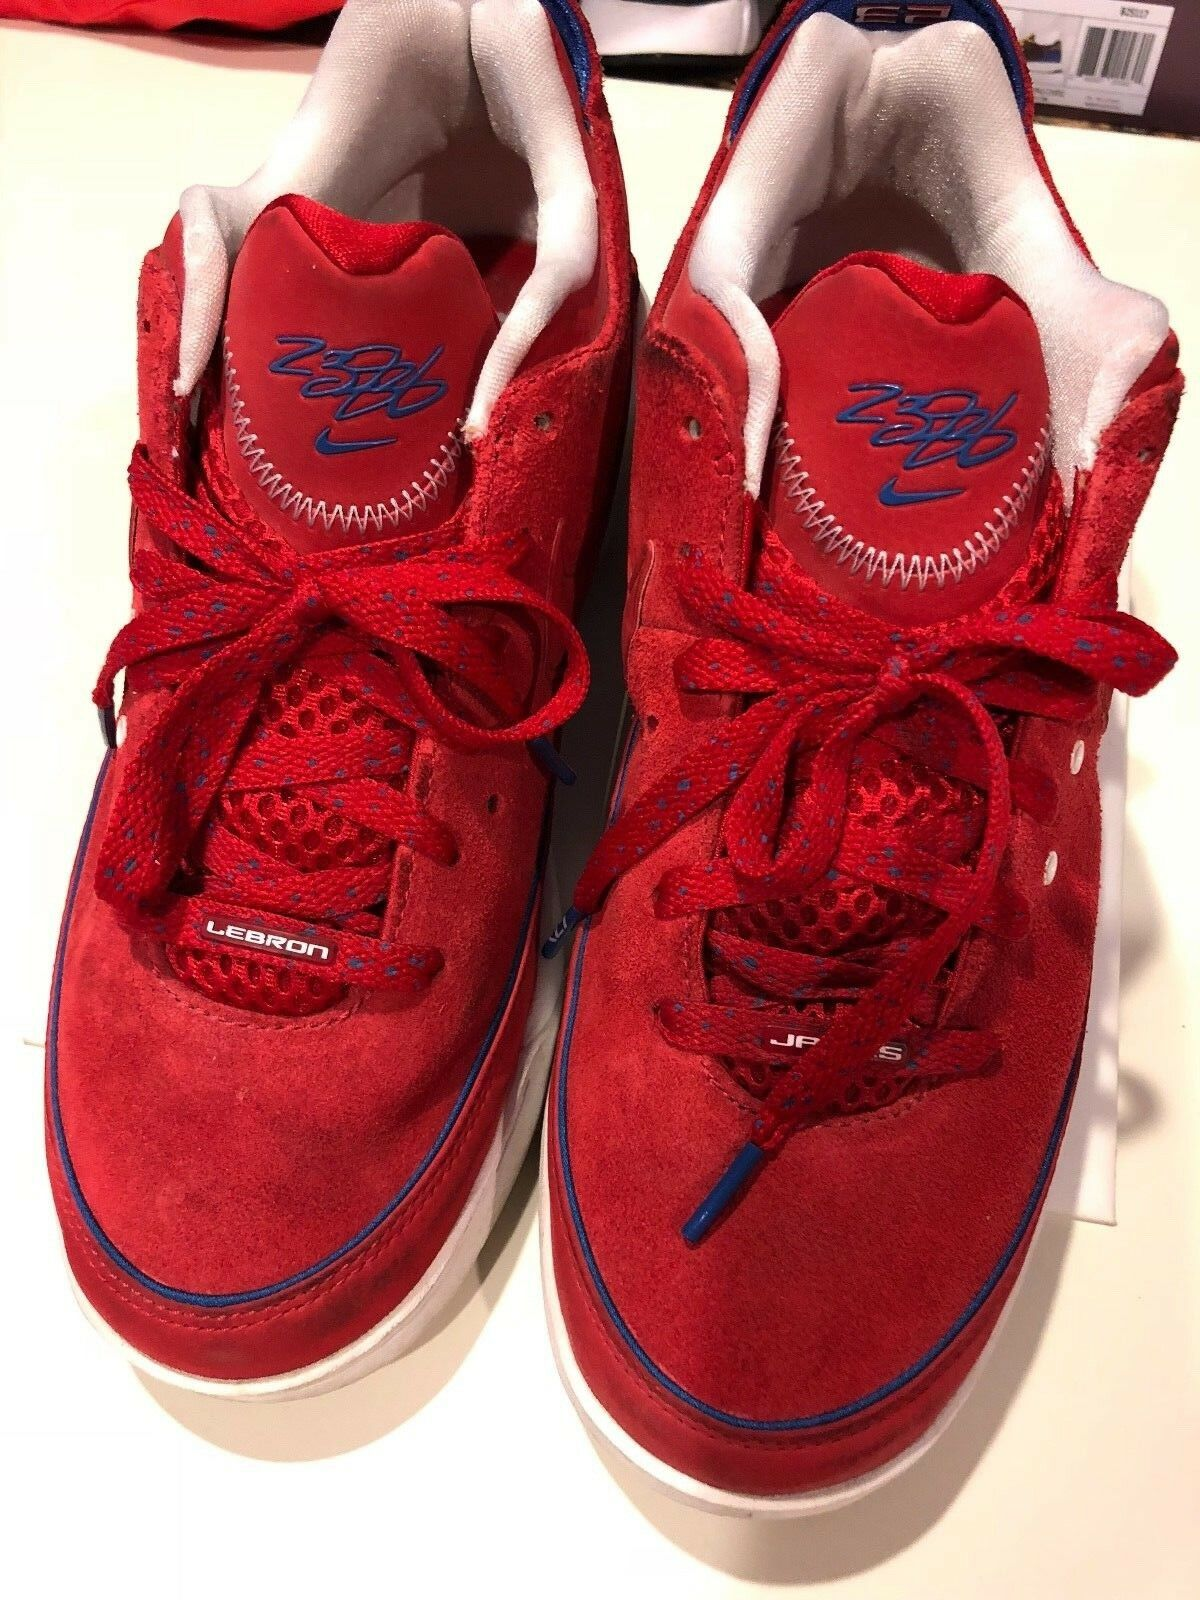 outlet store a8562 2651b lebron lebron lebron james nike 7 bas chaussures en daim rouge taille 8,5  61e8b1